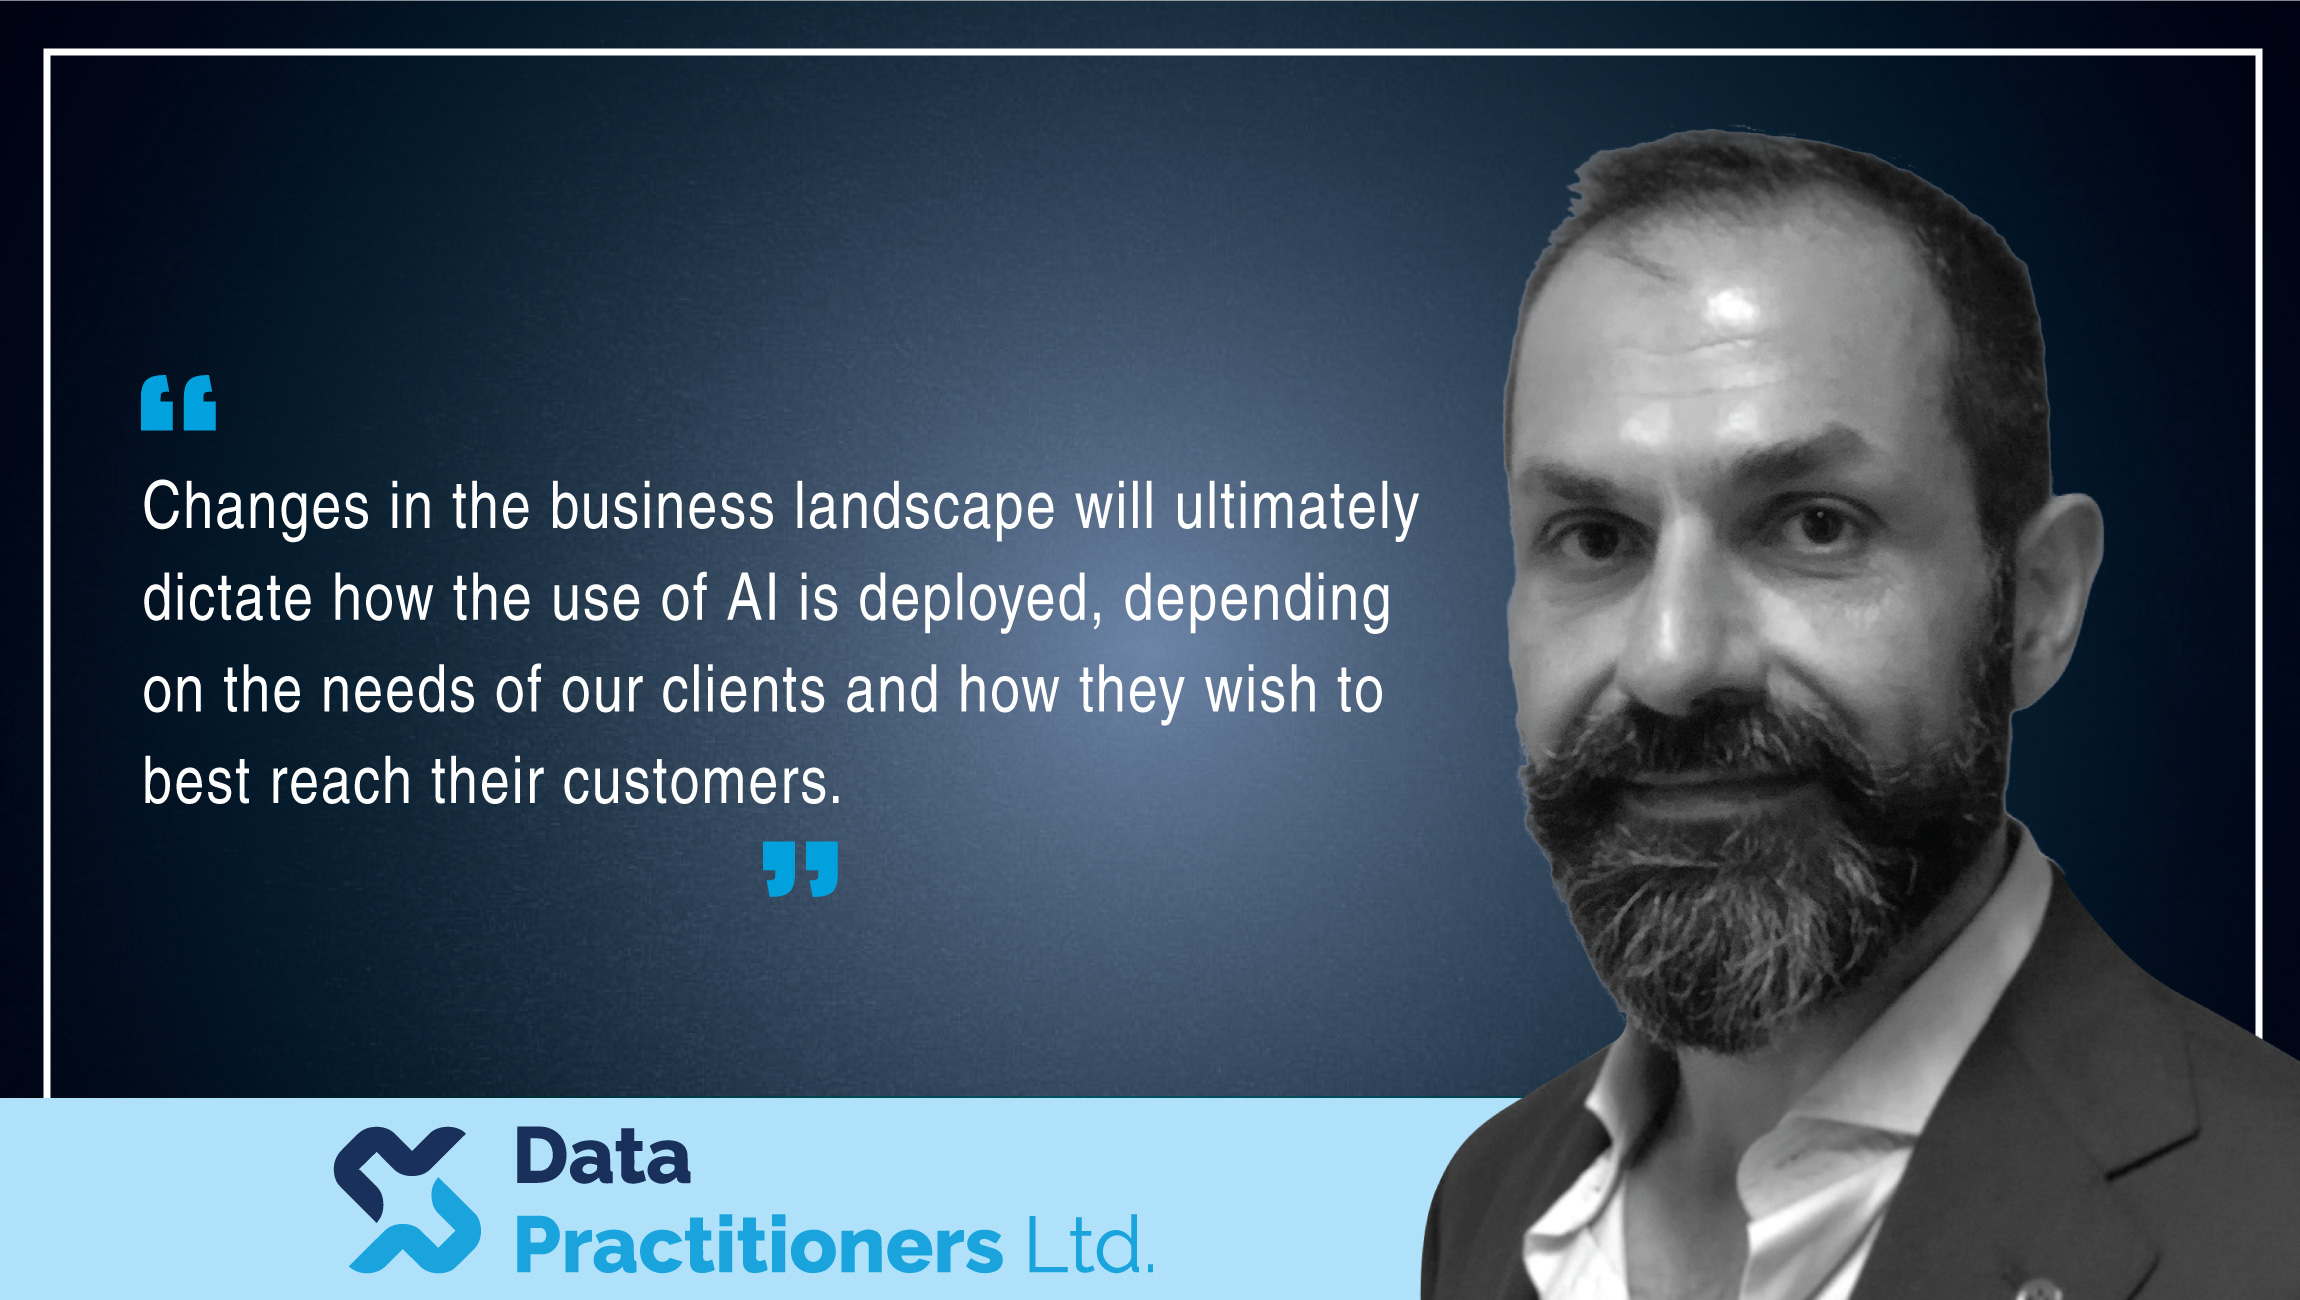 Dimitris Vlitas, Senior AI Advisor, Data Practitioners